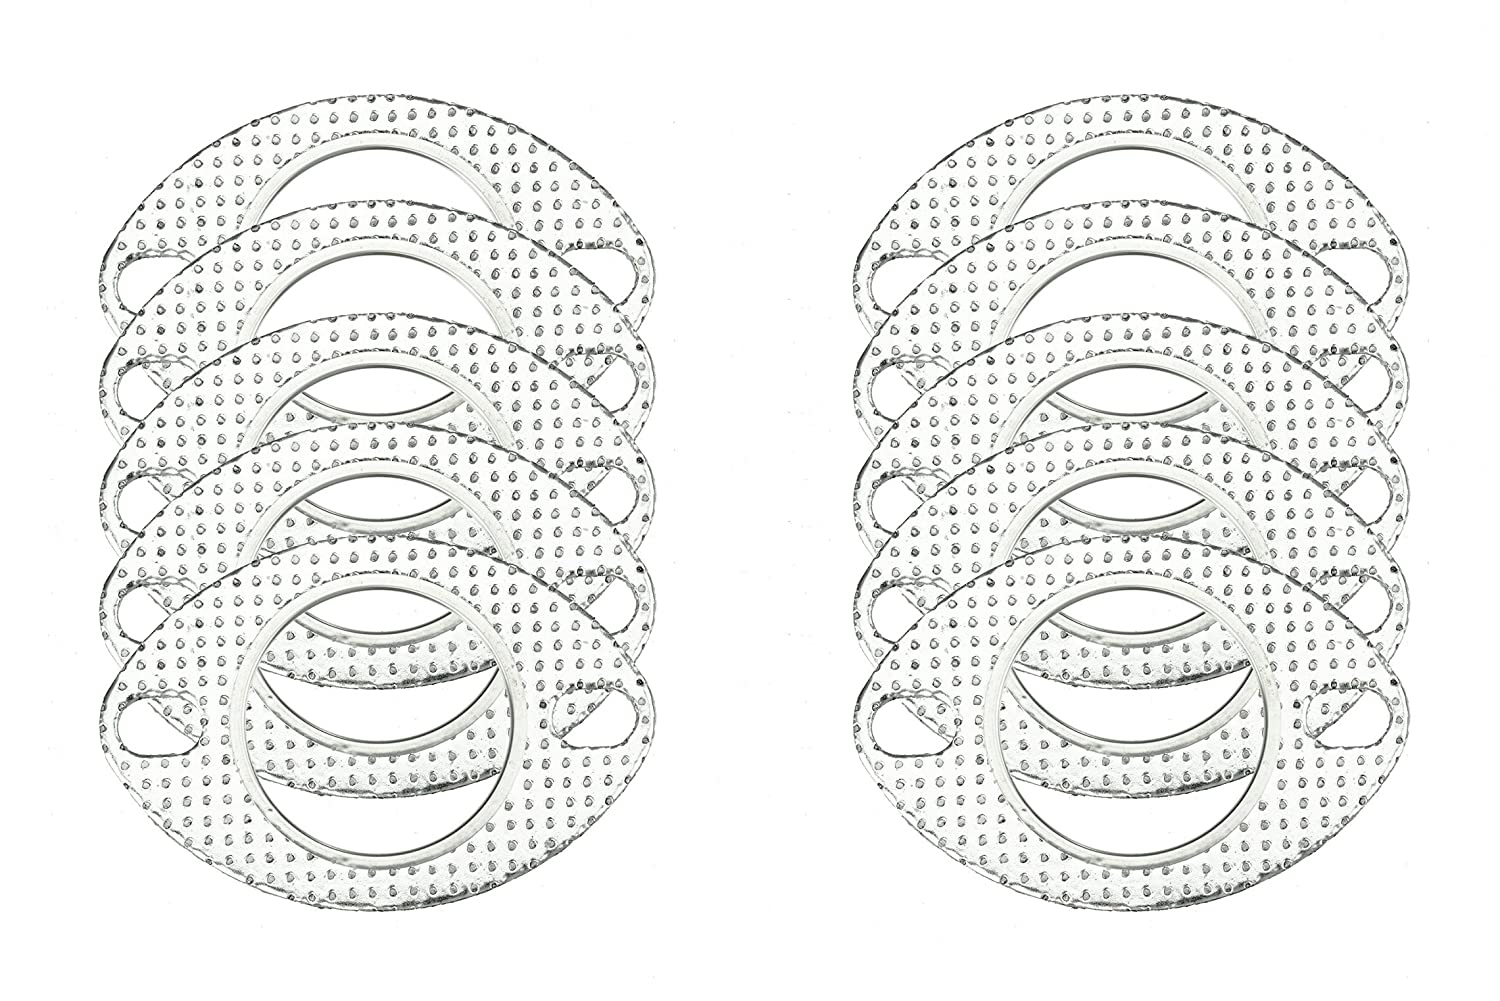 CarXX 2.75' Exhaust Gasket 2-Bolt 70mm Flange High Temperature Graphite for Headers, Catback, Axleback, Downpipe (2 Pack)